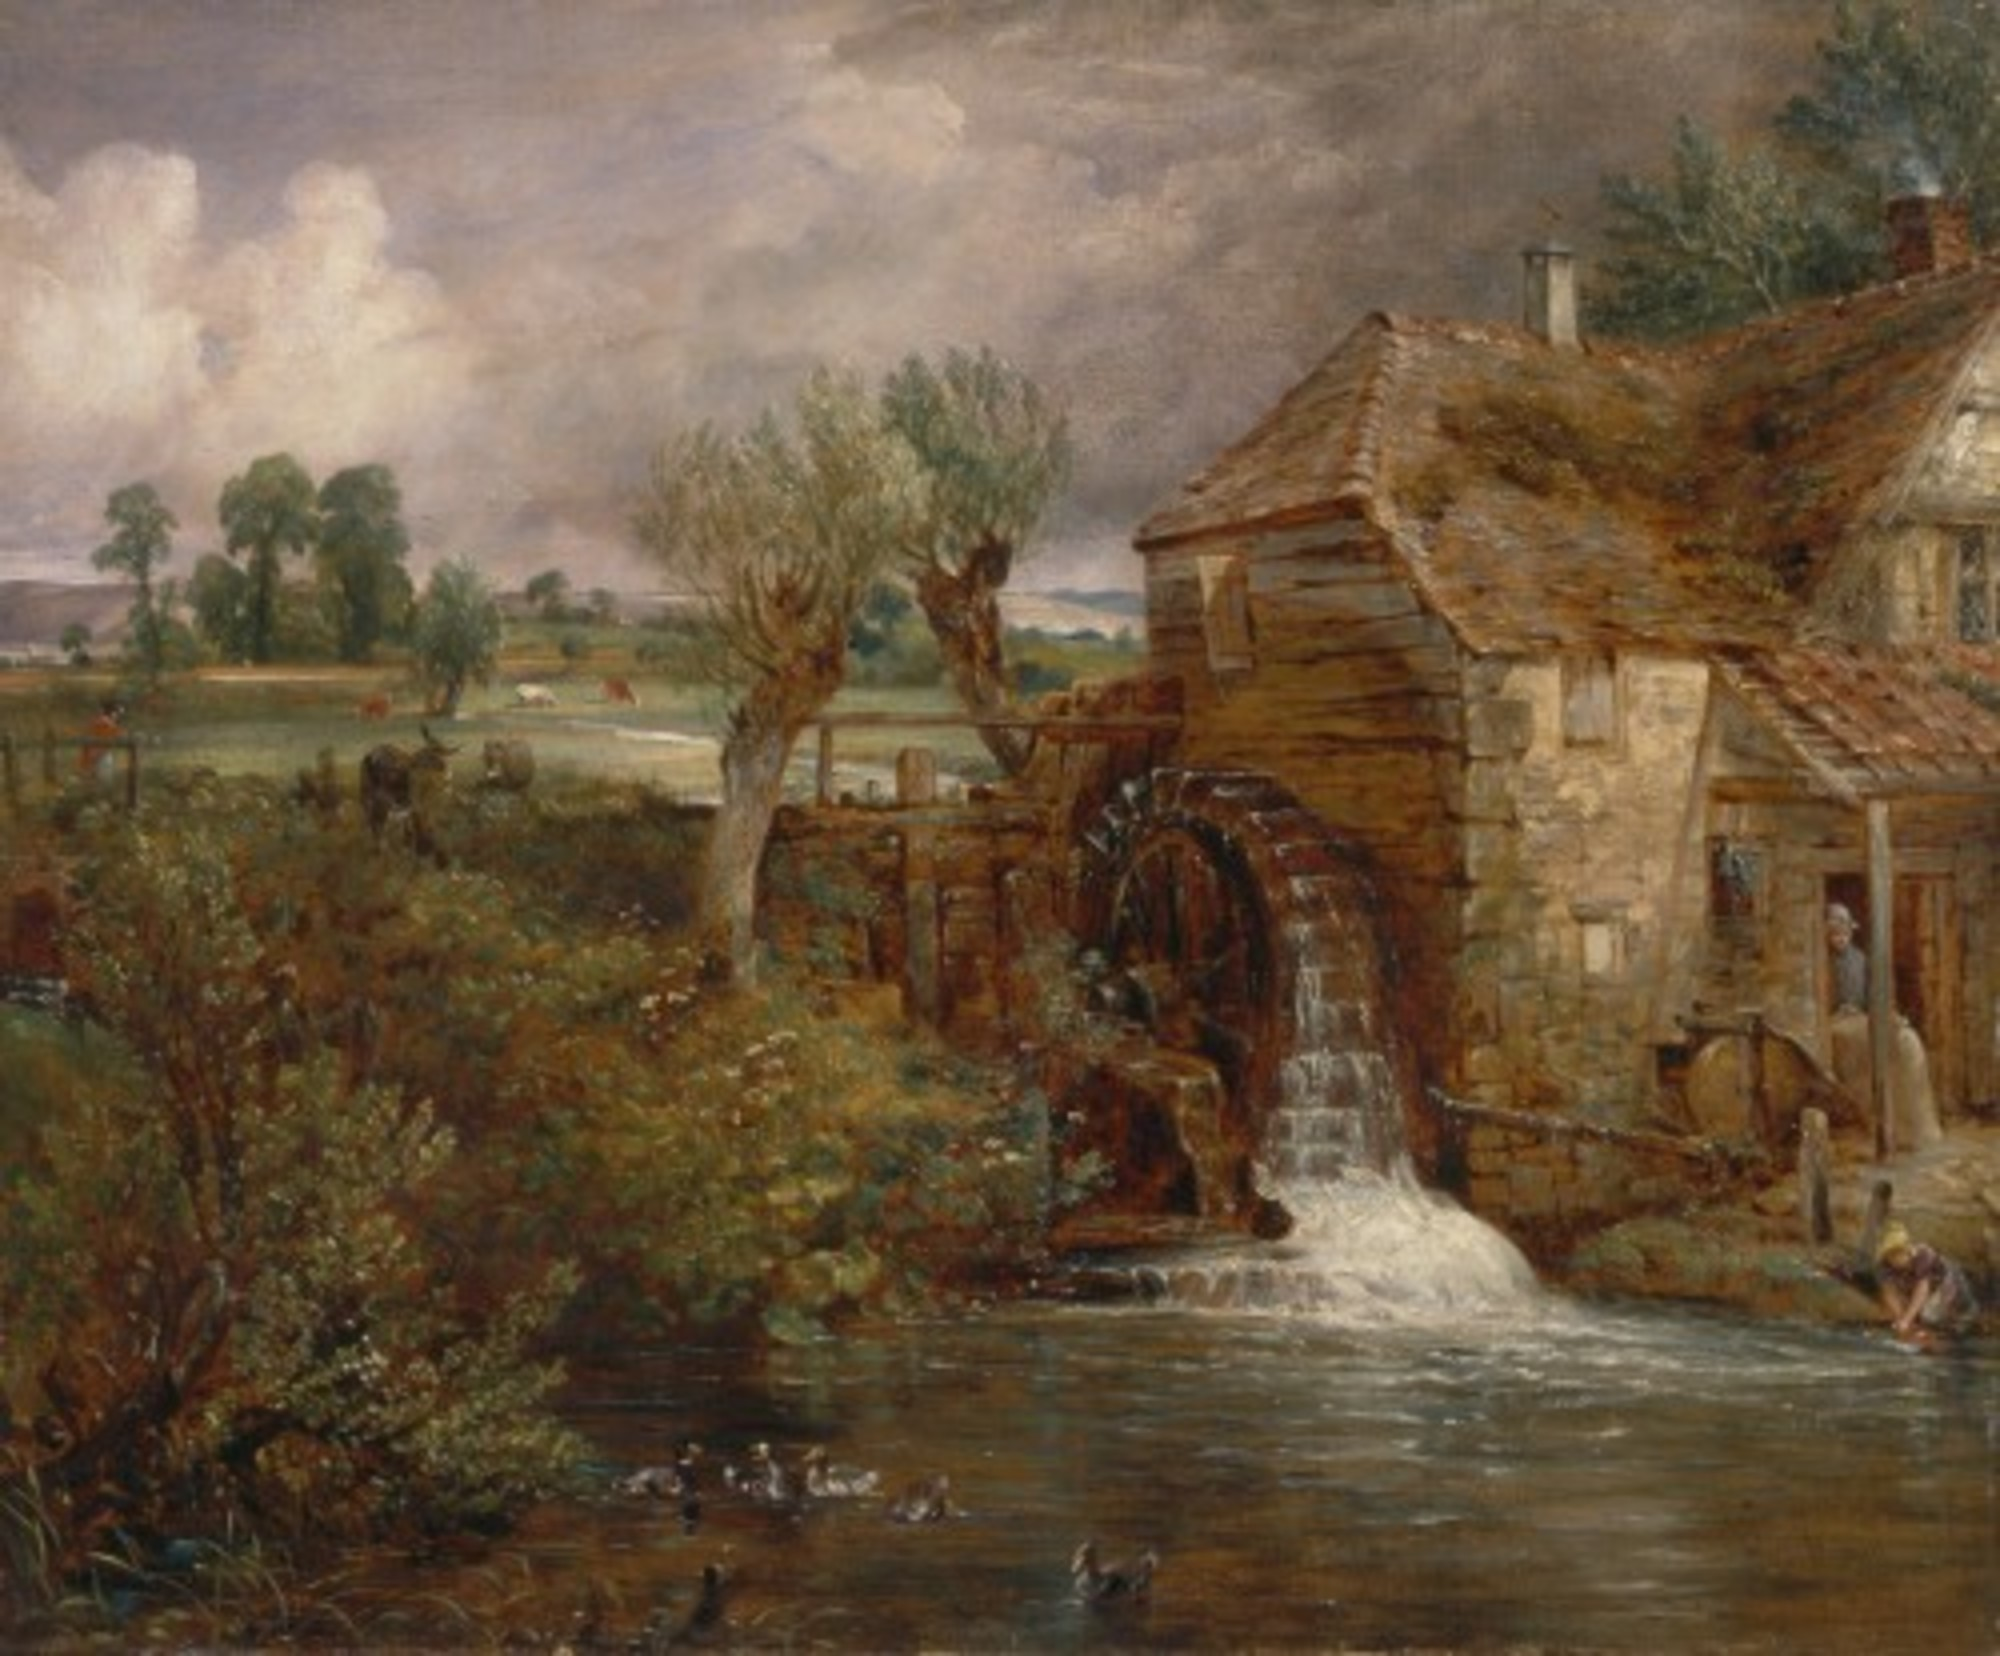 John-Constable---Parham-Mill-Gillingham---Google-Art-Project.jpg